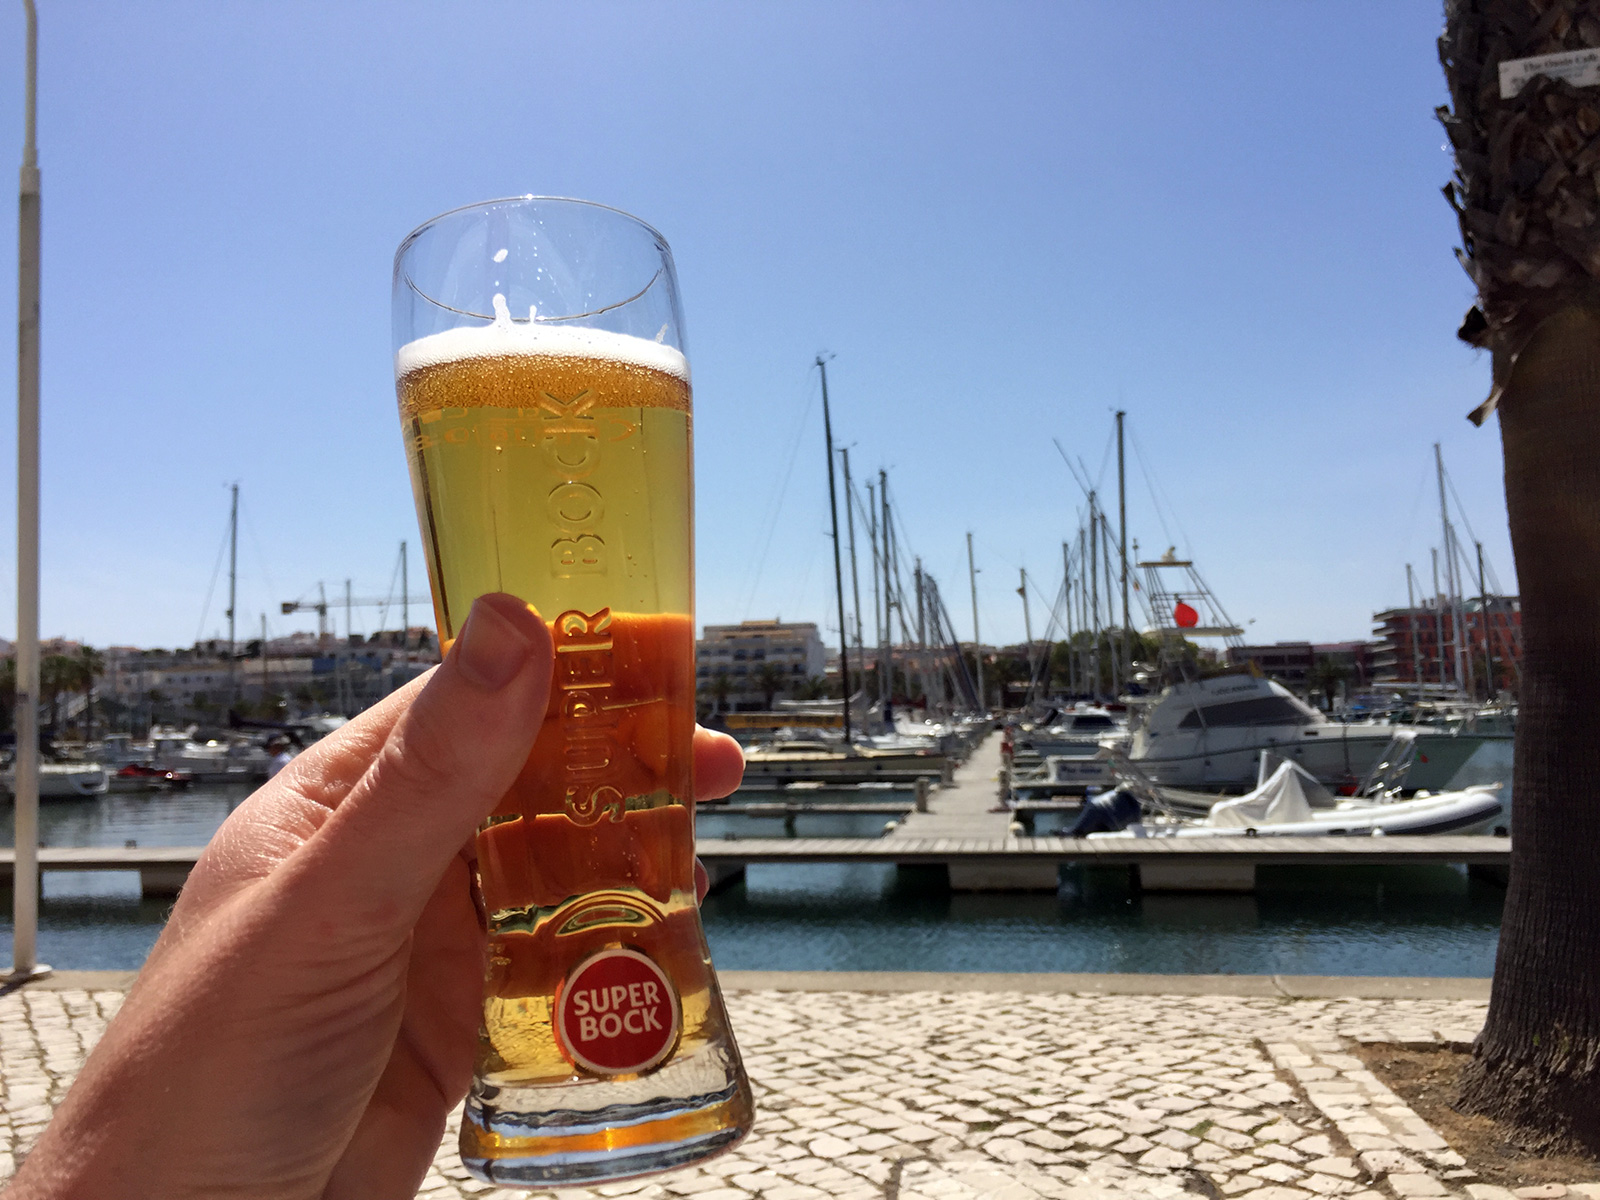 Beer in Lagos, Portugal by Jets Like Taxis